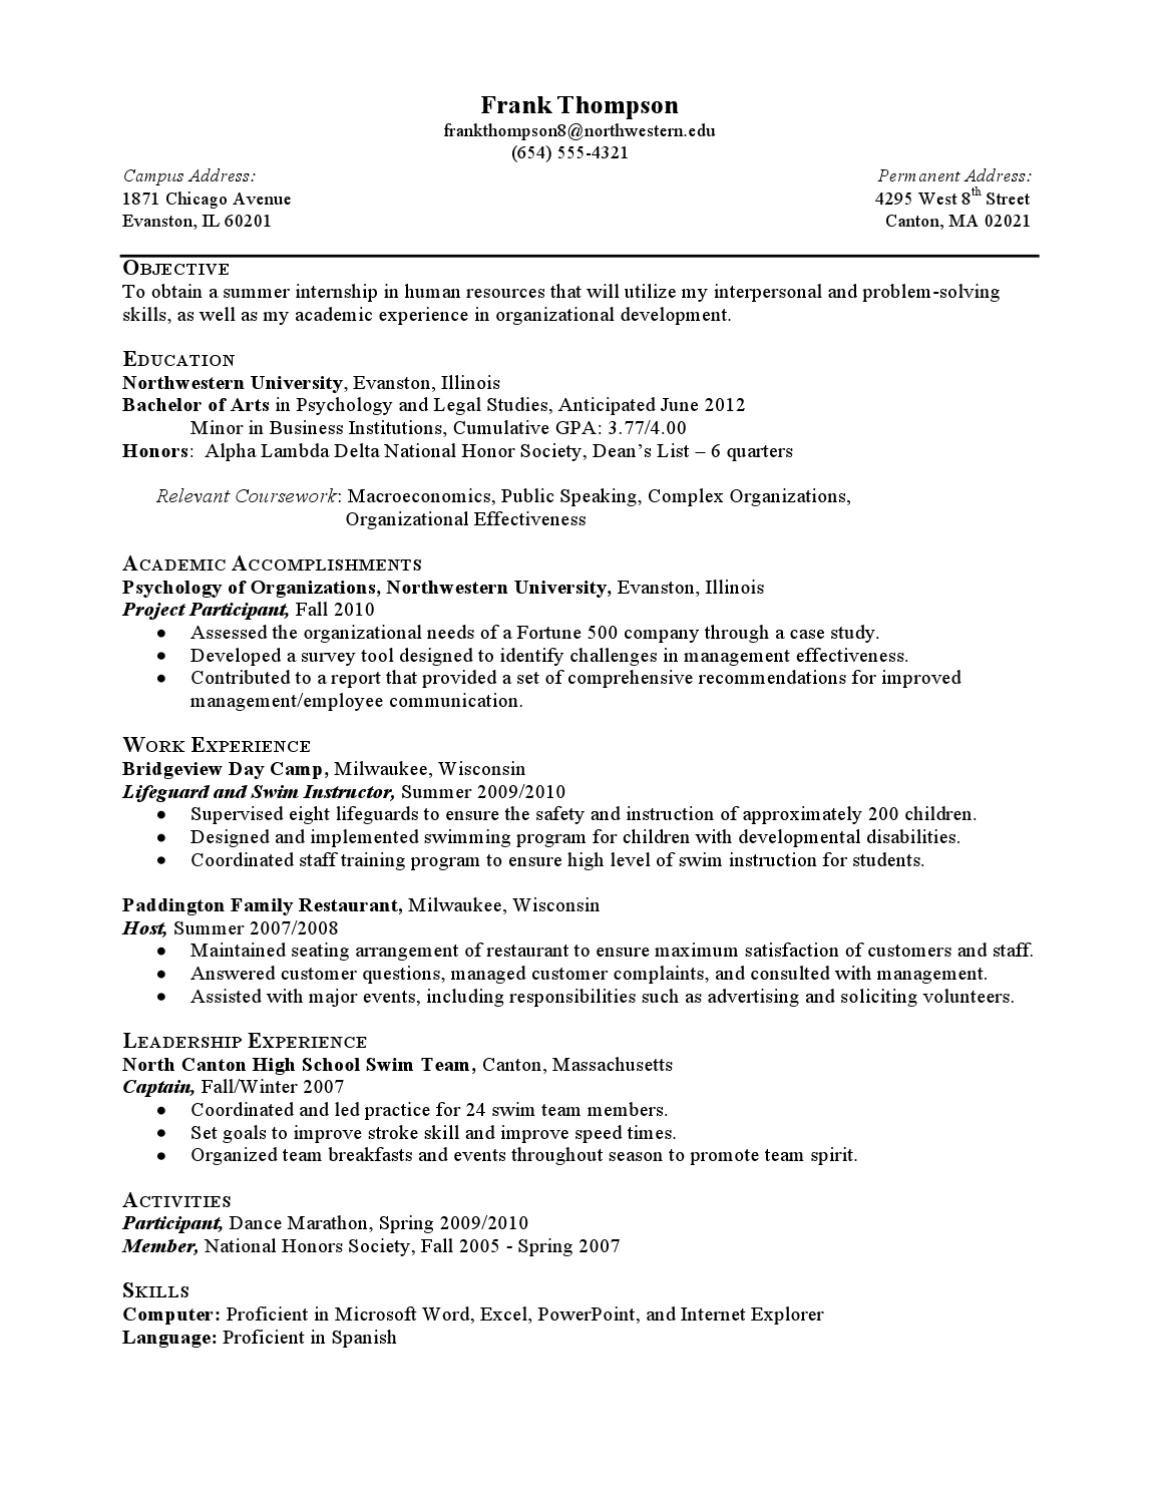 sample university resume northwestern university resume samples internship resume sample less experienced by northwestern university career services page issuu issuu